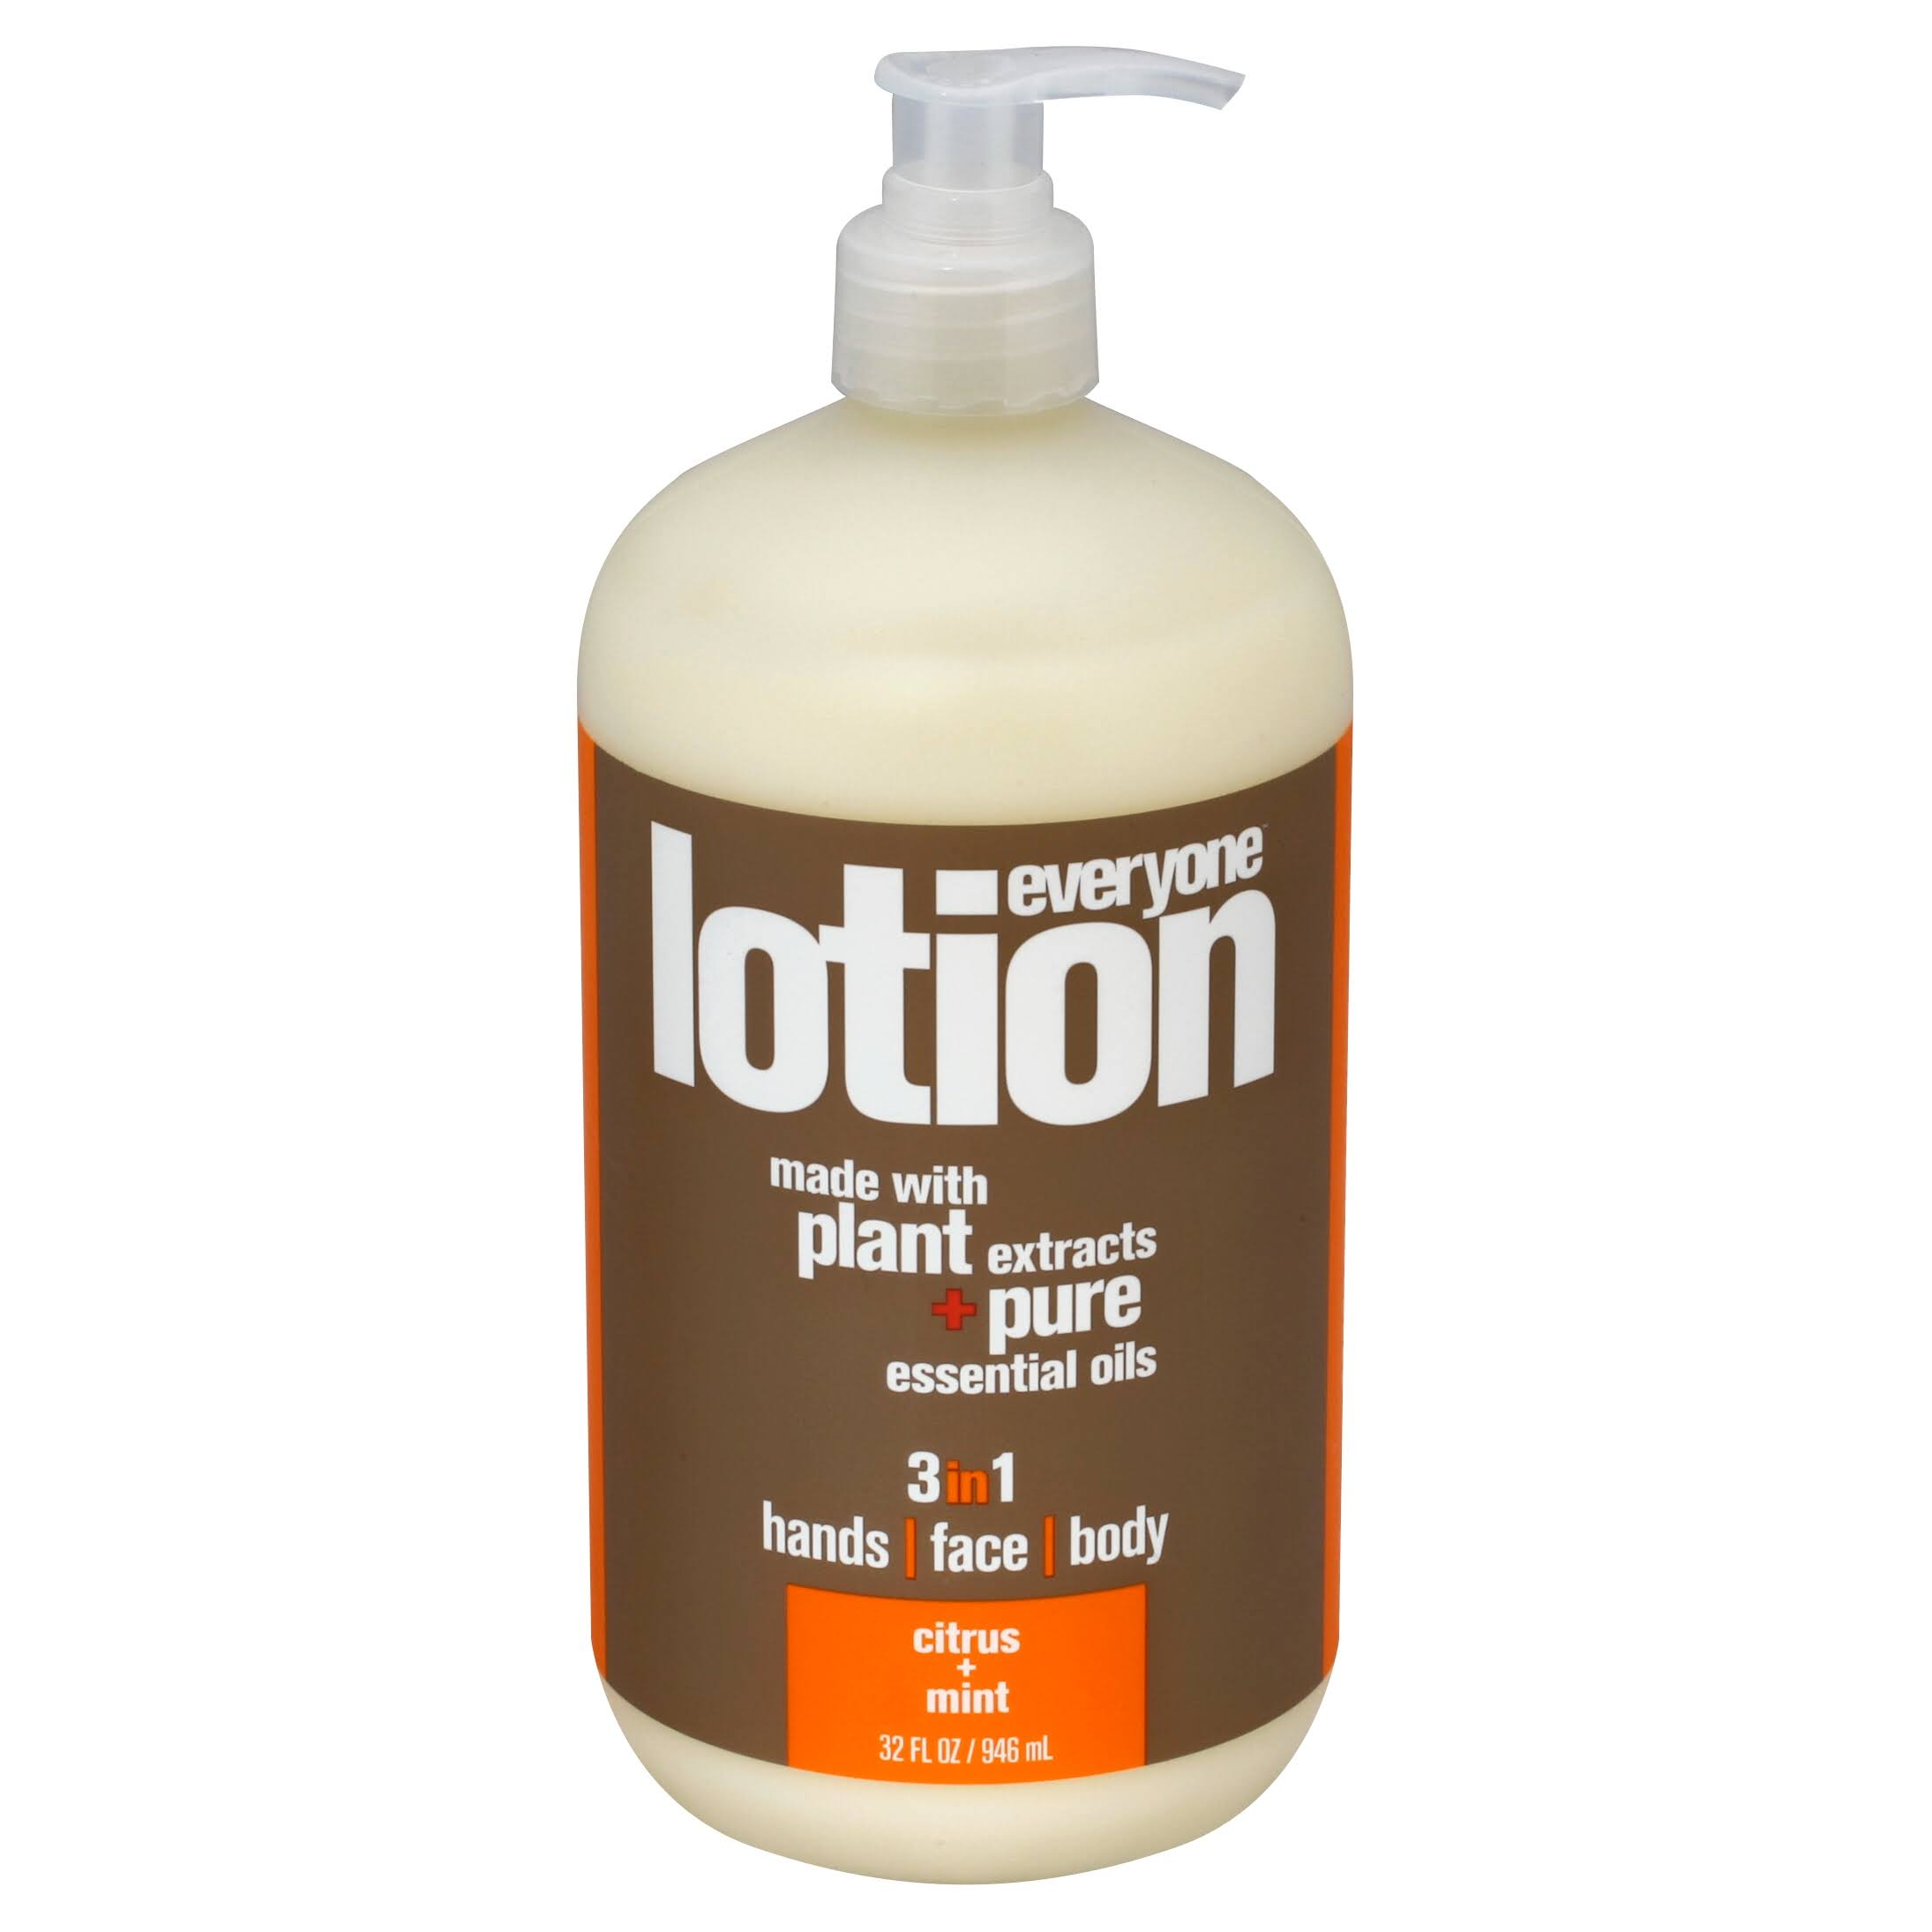 Everyone Body Lotion - Citrus and Mint, 32oz